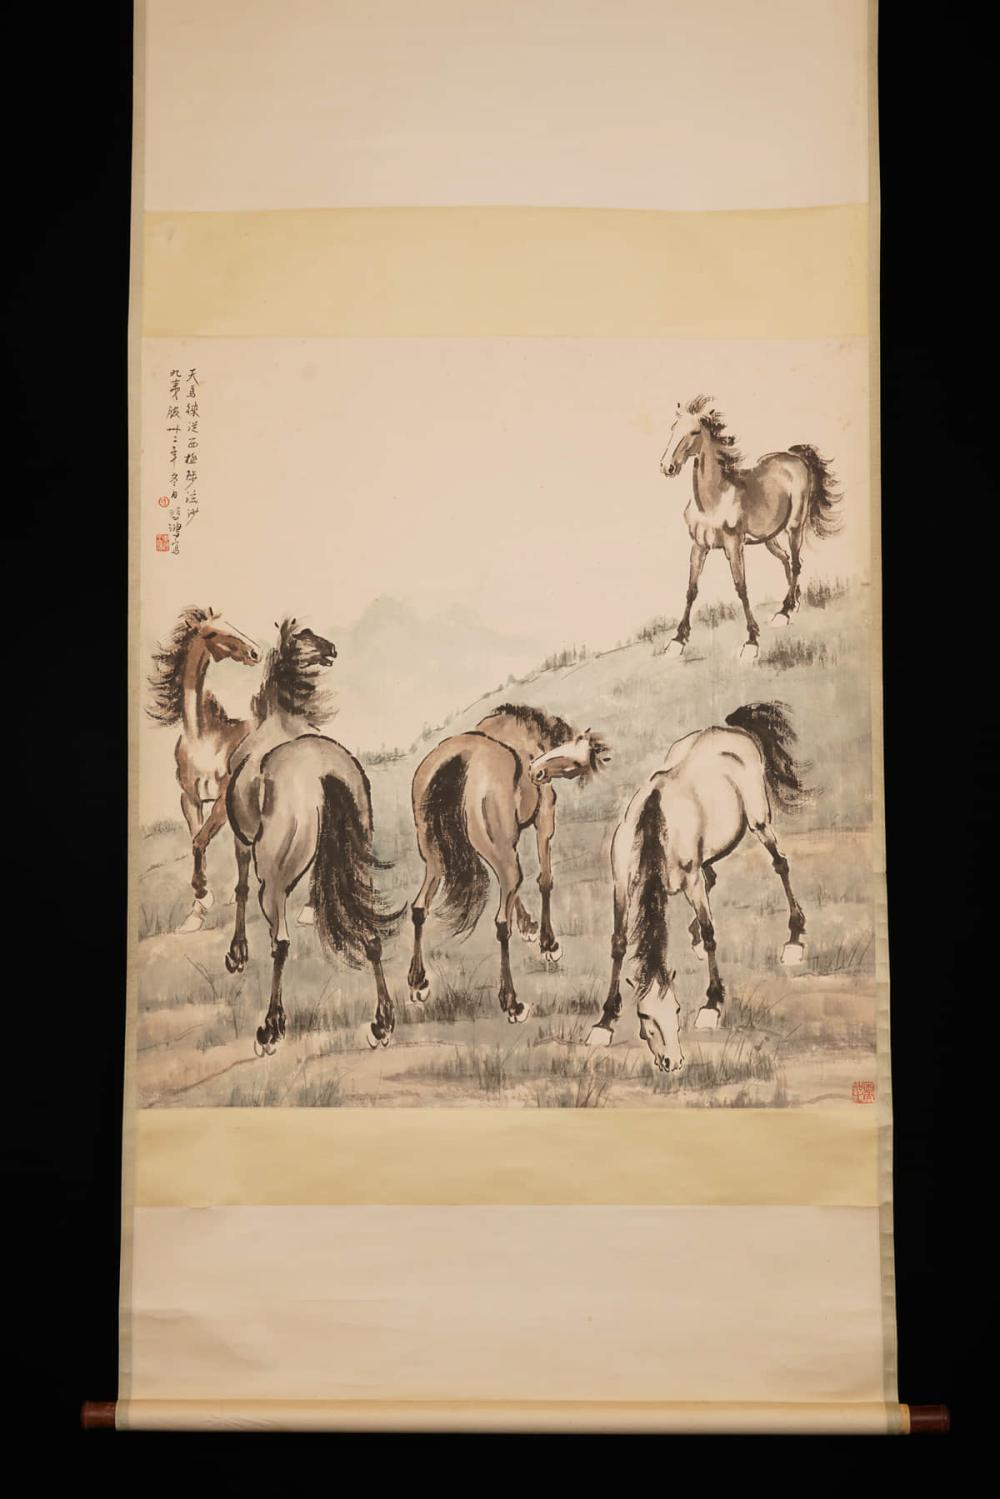 Sold Price A Chinese Horse Painting Xu Beihong Mark August 4 0120 9 00 Am Edt